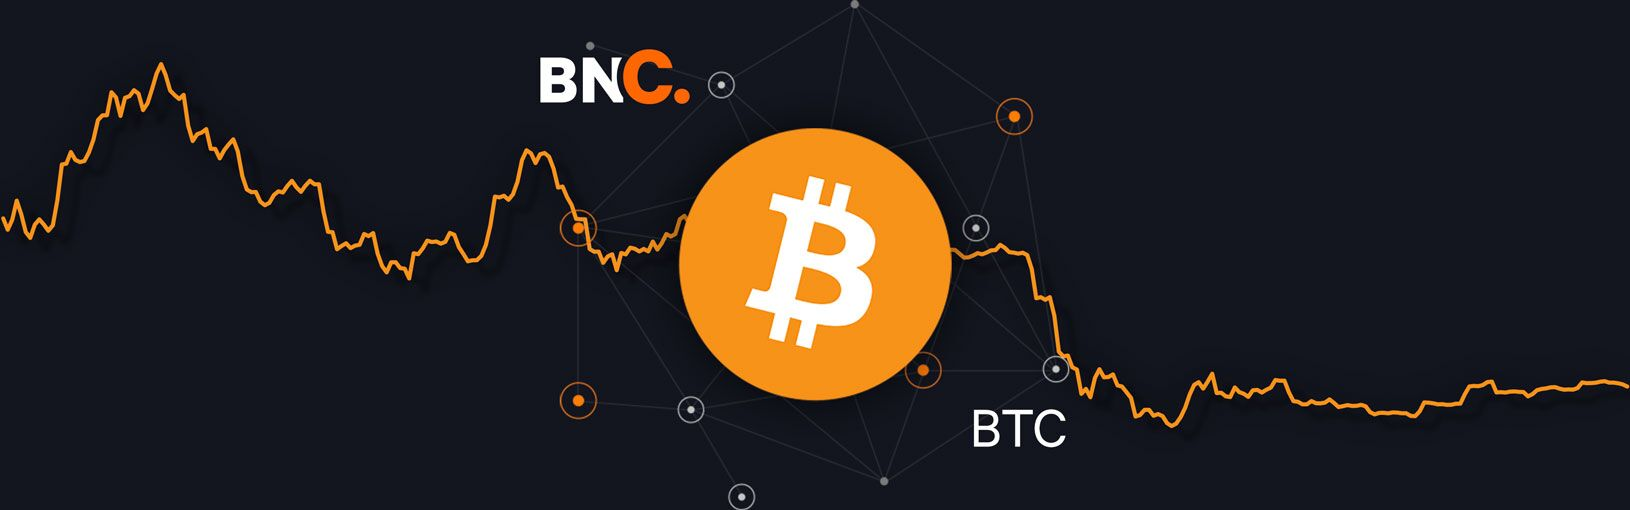 fdeb9c2f6f7 Bitcoin Price Analysis - Price goes south on slew of positive news » Brave  New Coin